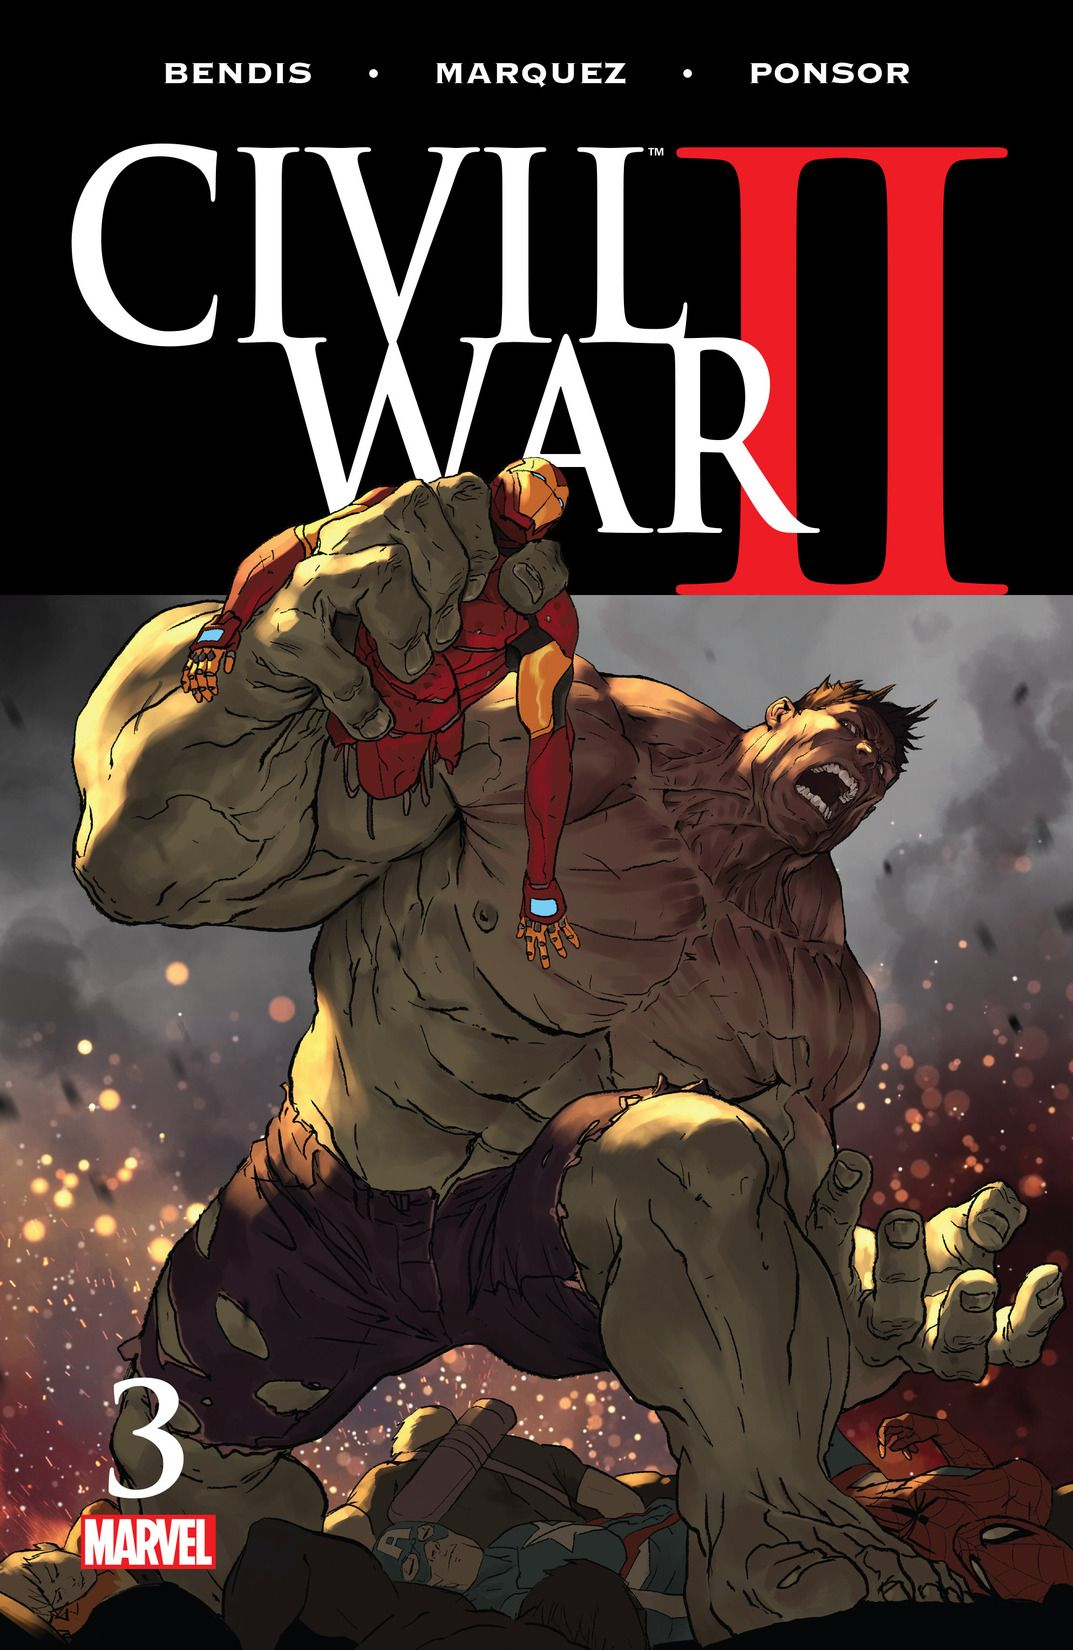 marvel entertainment civil war II issue 3, 2016